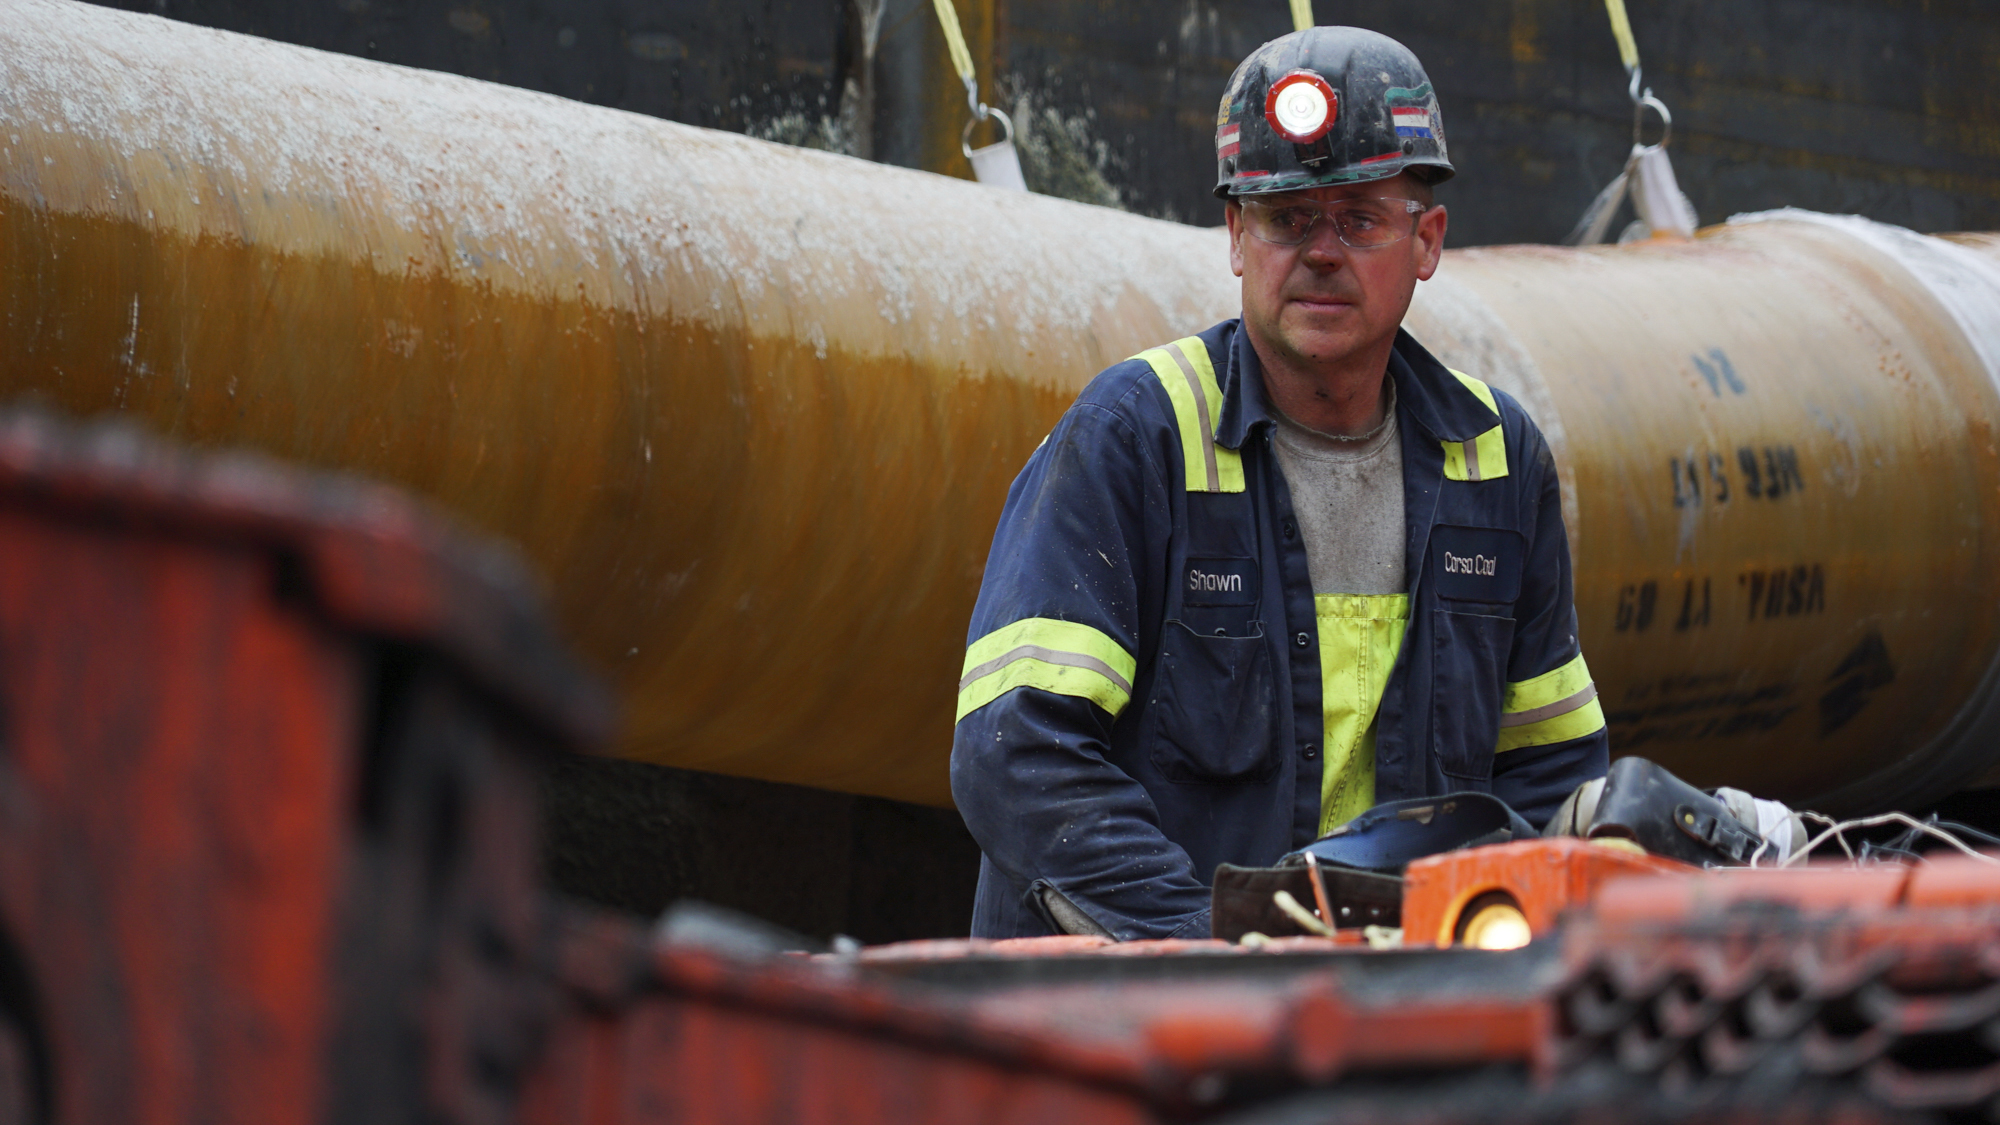 A miner runs a coal continuous miner at a coal mine in Friedens, Pa., June 7, 2017.